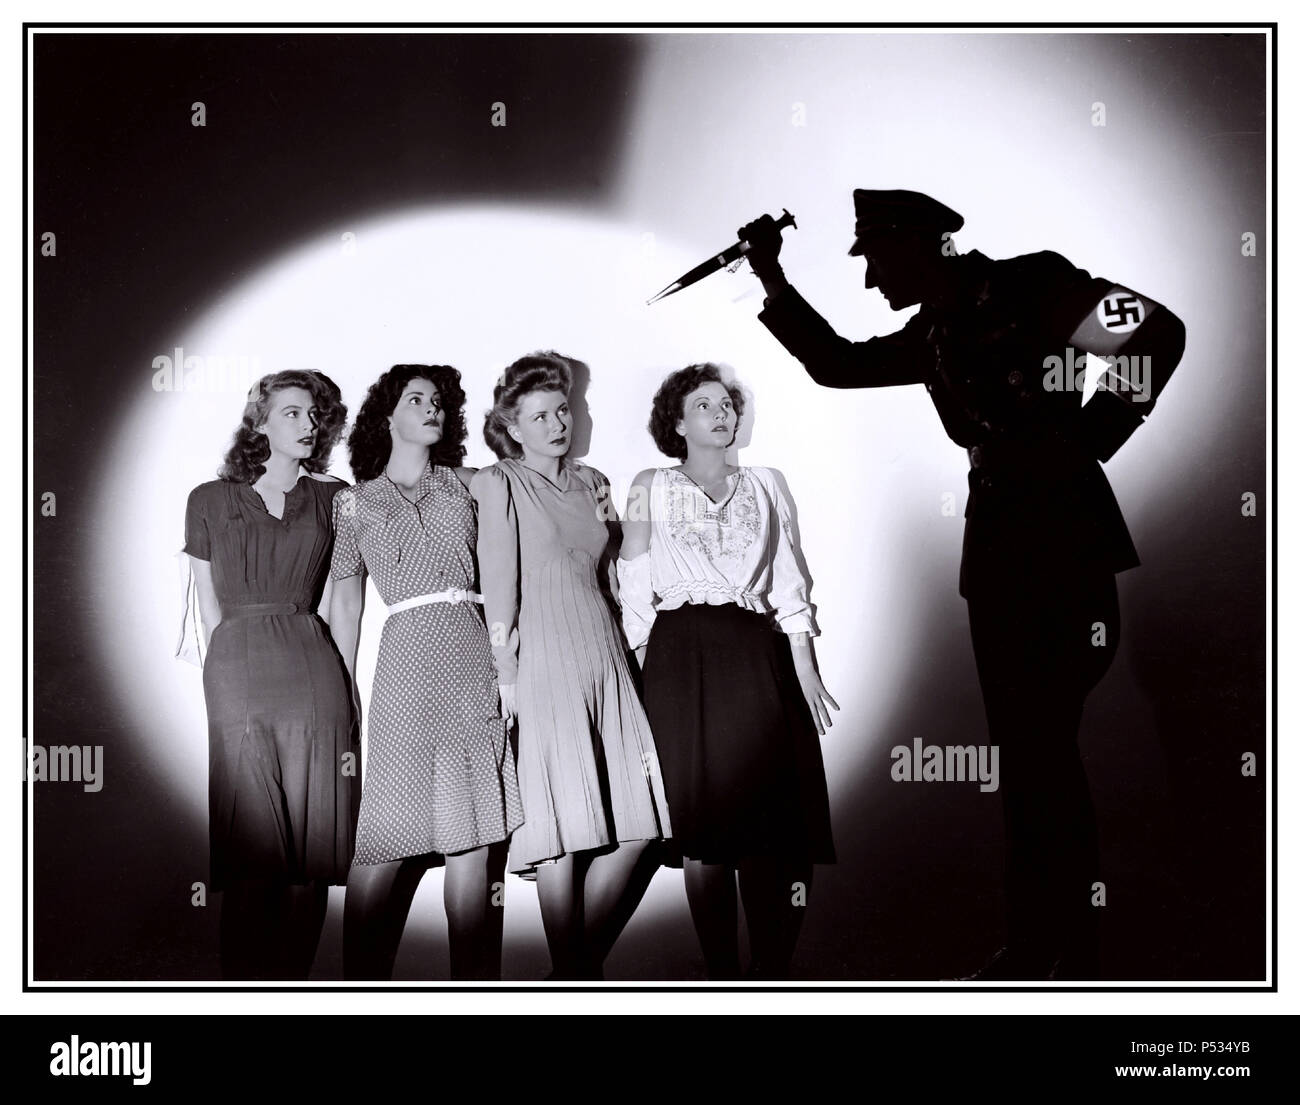 B&W Movie Still image from '', with Alan Curtis, Patricia Morison pictured, John Carradine, Ava Gardner, Frances Rafferty, Natalie Draper, Leatrice Joy Gilbert, 1943 - Stock Image